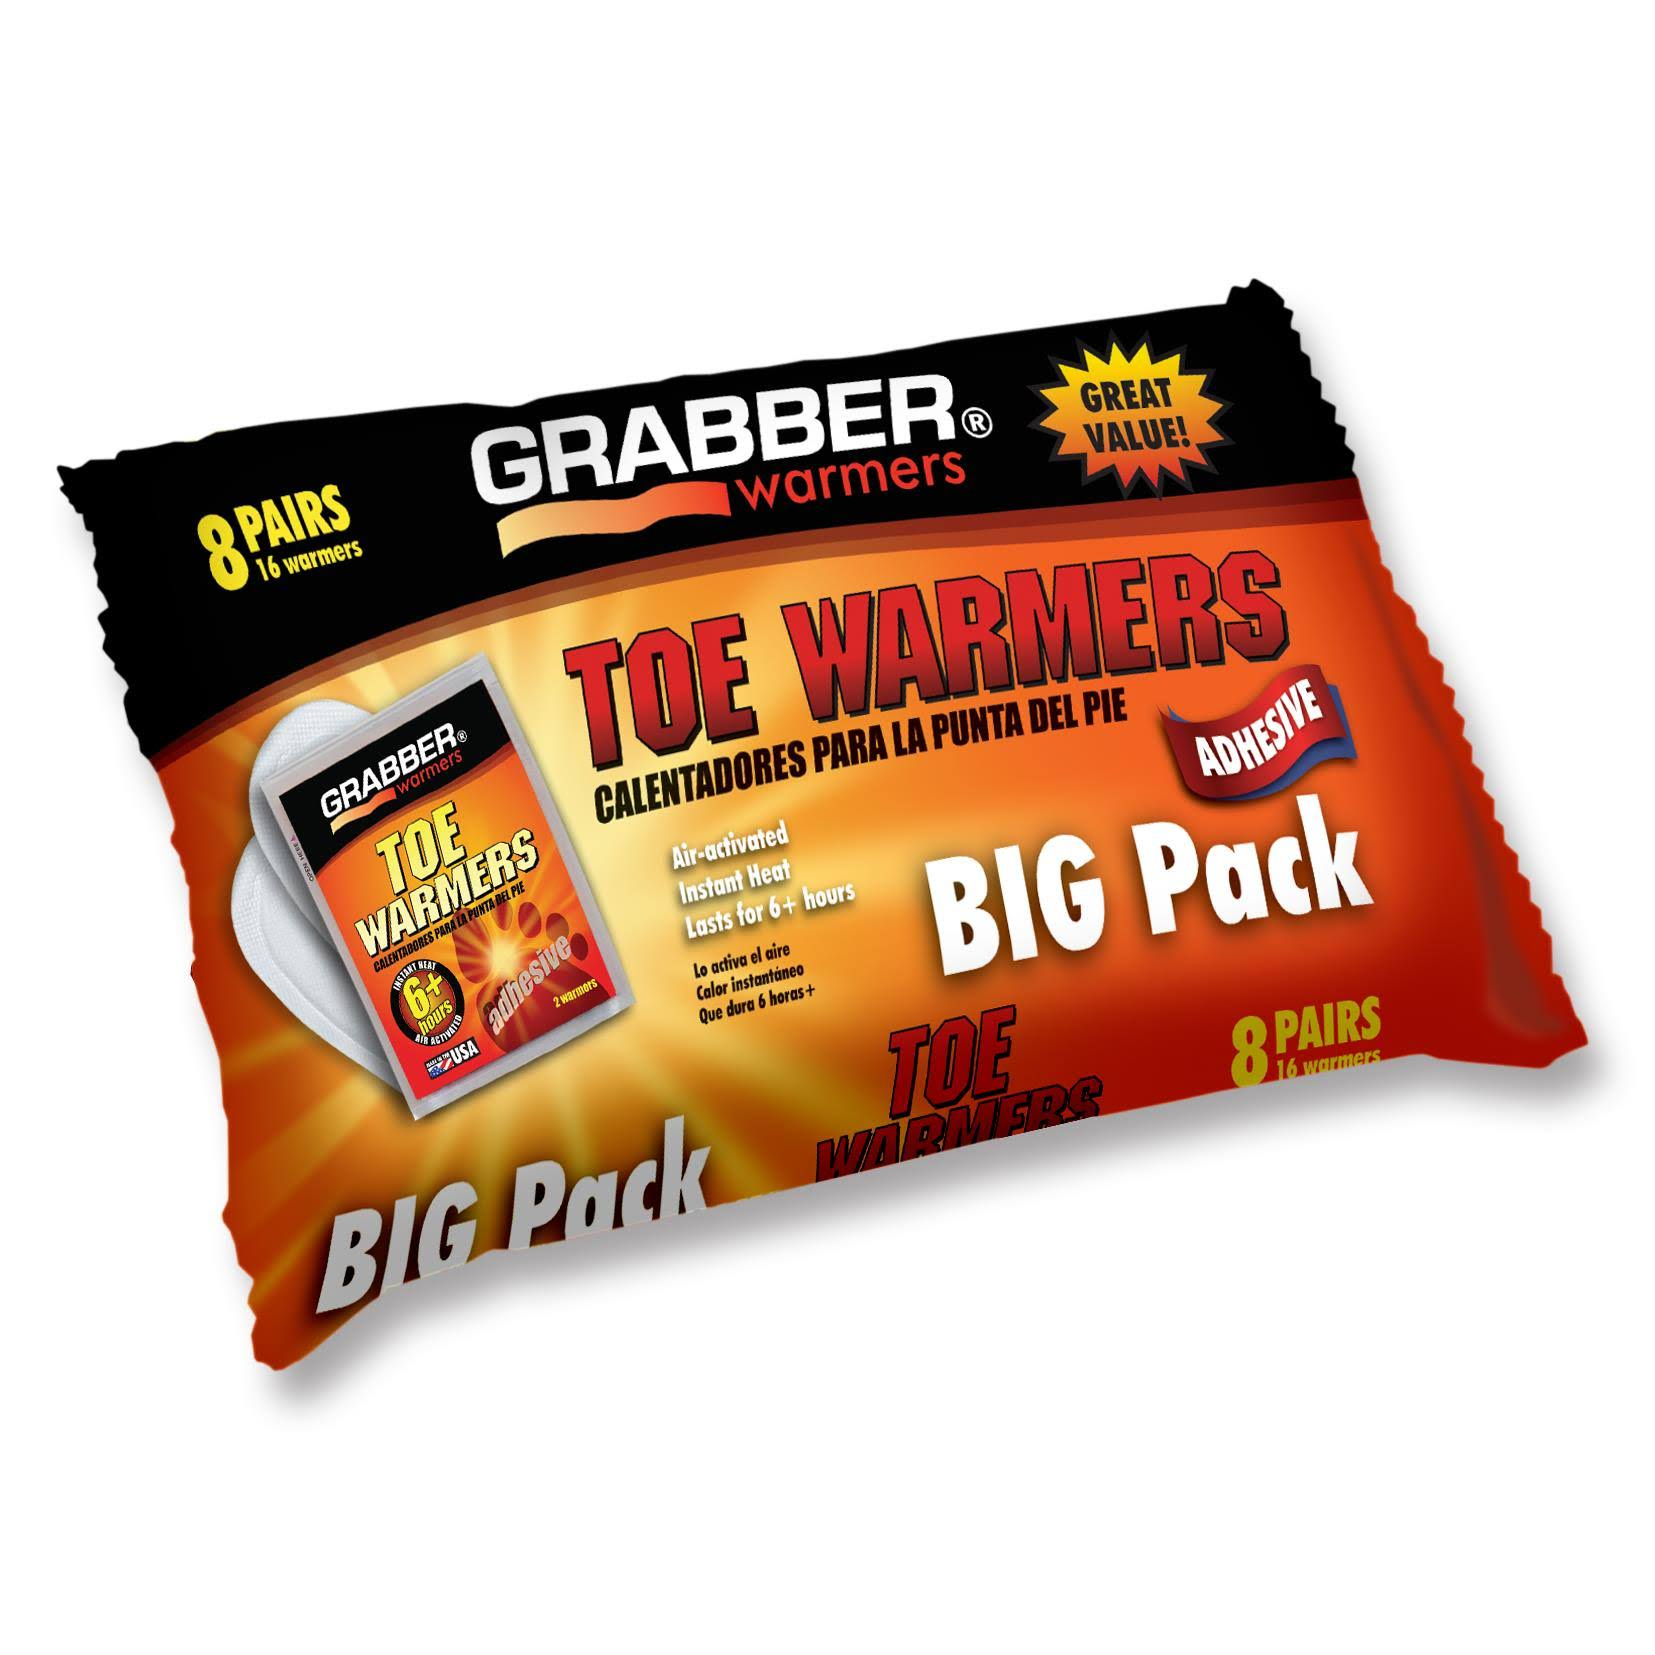 Grabber Warmers Toe Warmer - Big Pack, 8 Pairs